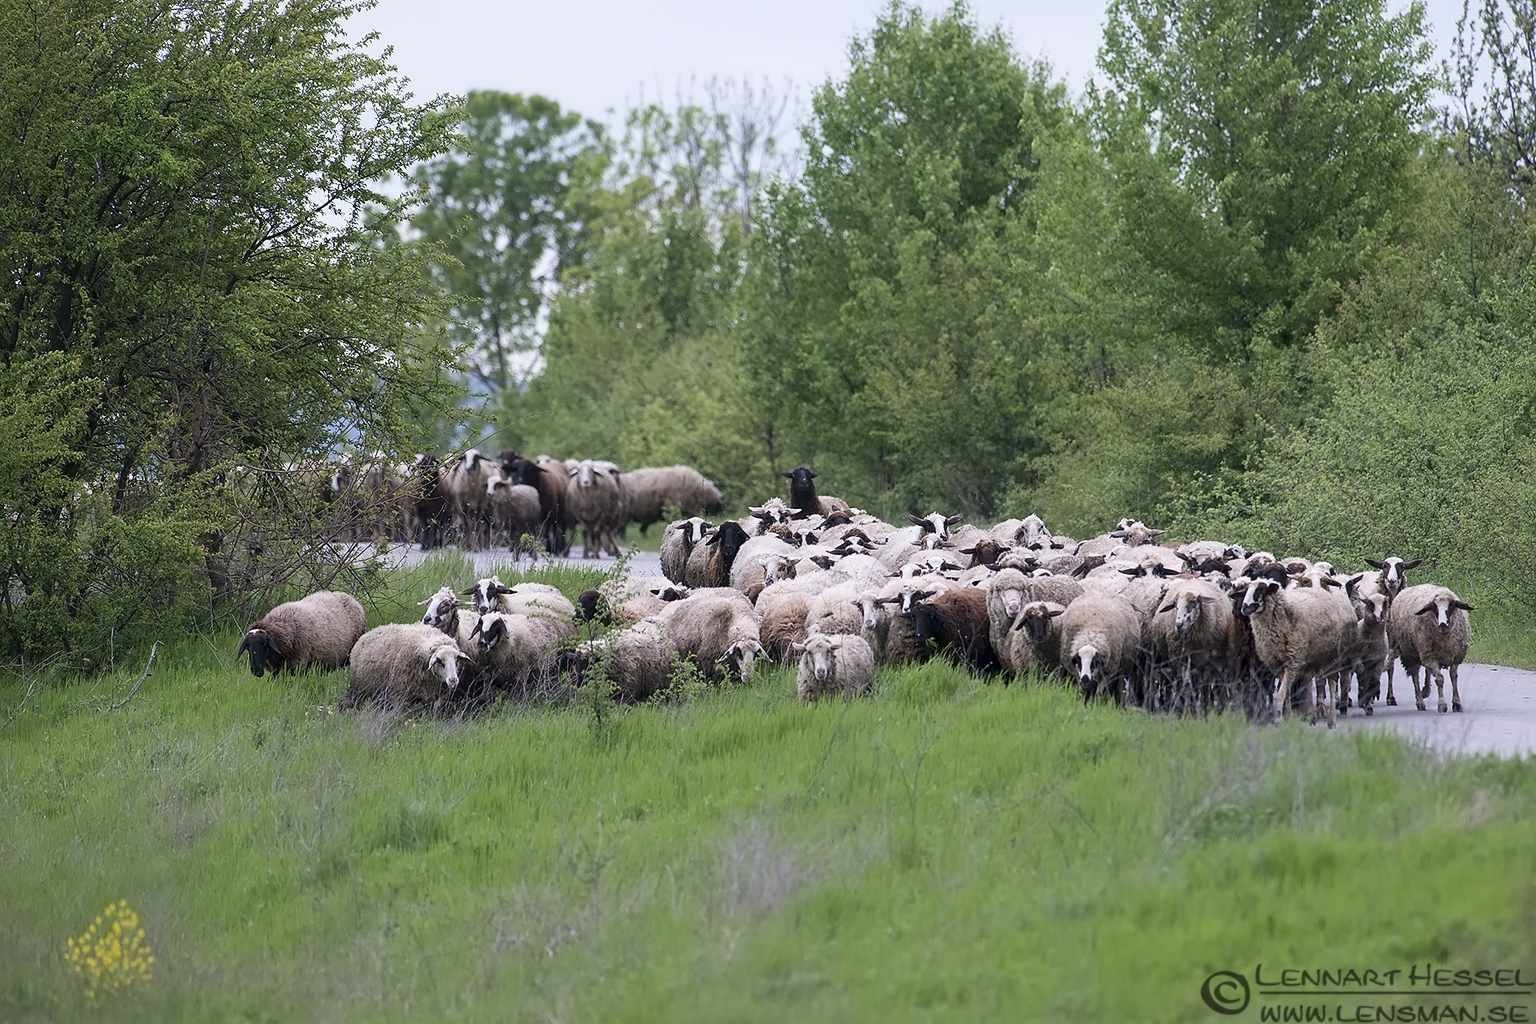 Sheep herd in Bulgaria